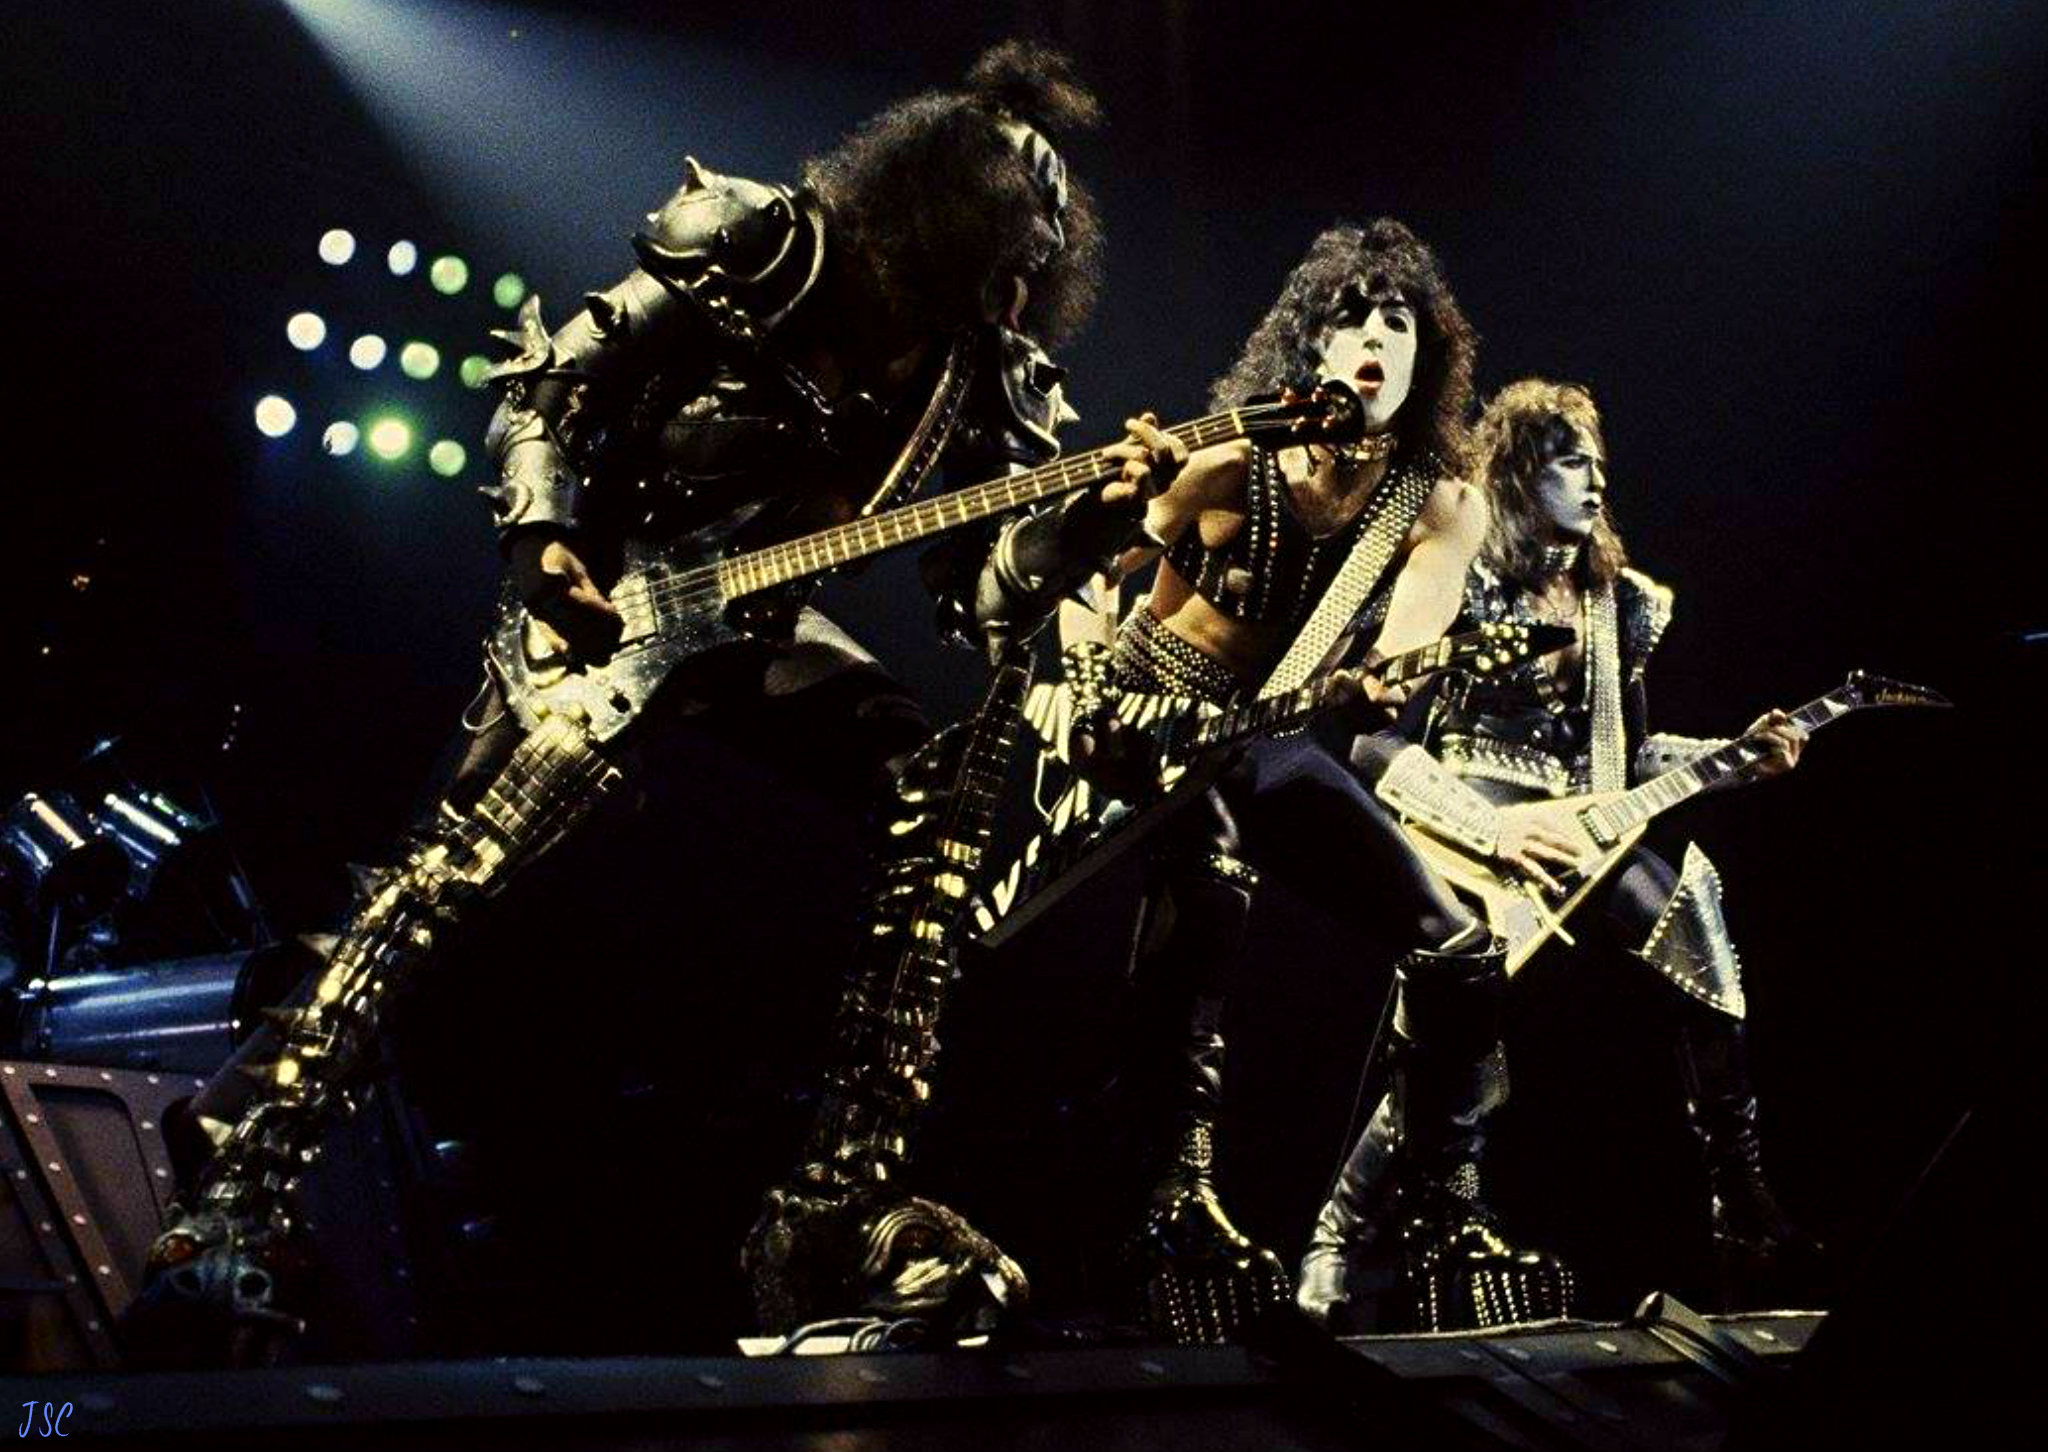 KISS - Creatures Of The Night (Promo 1982) - YouTube